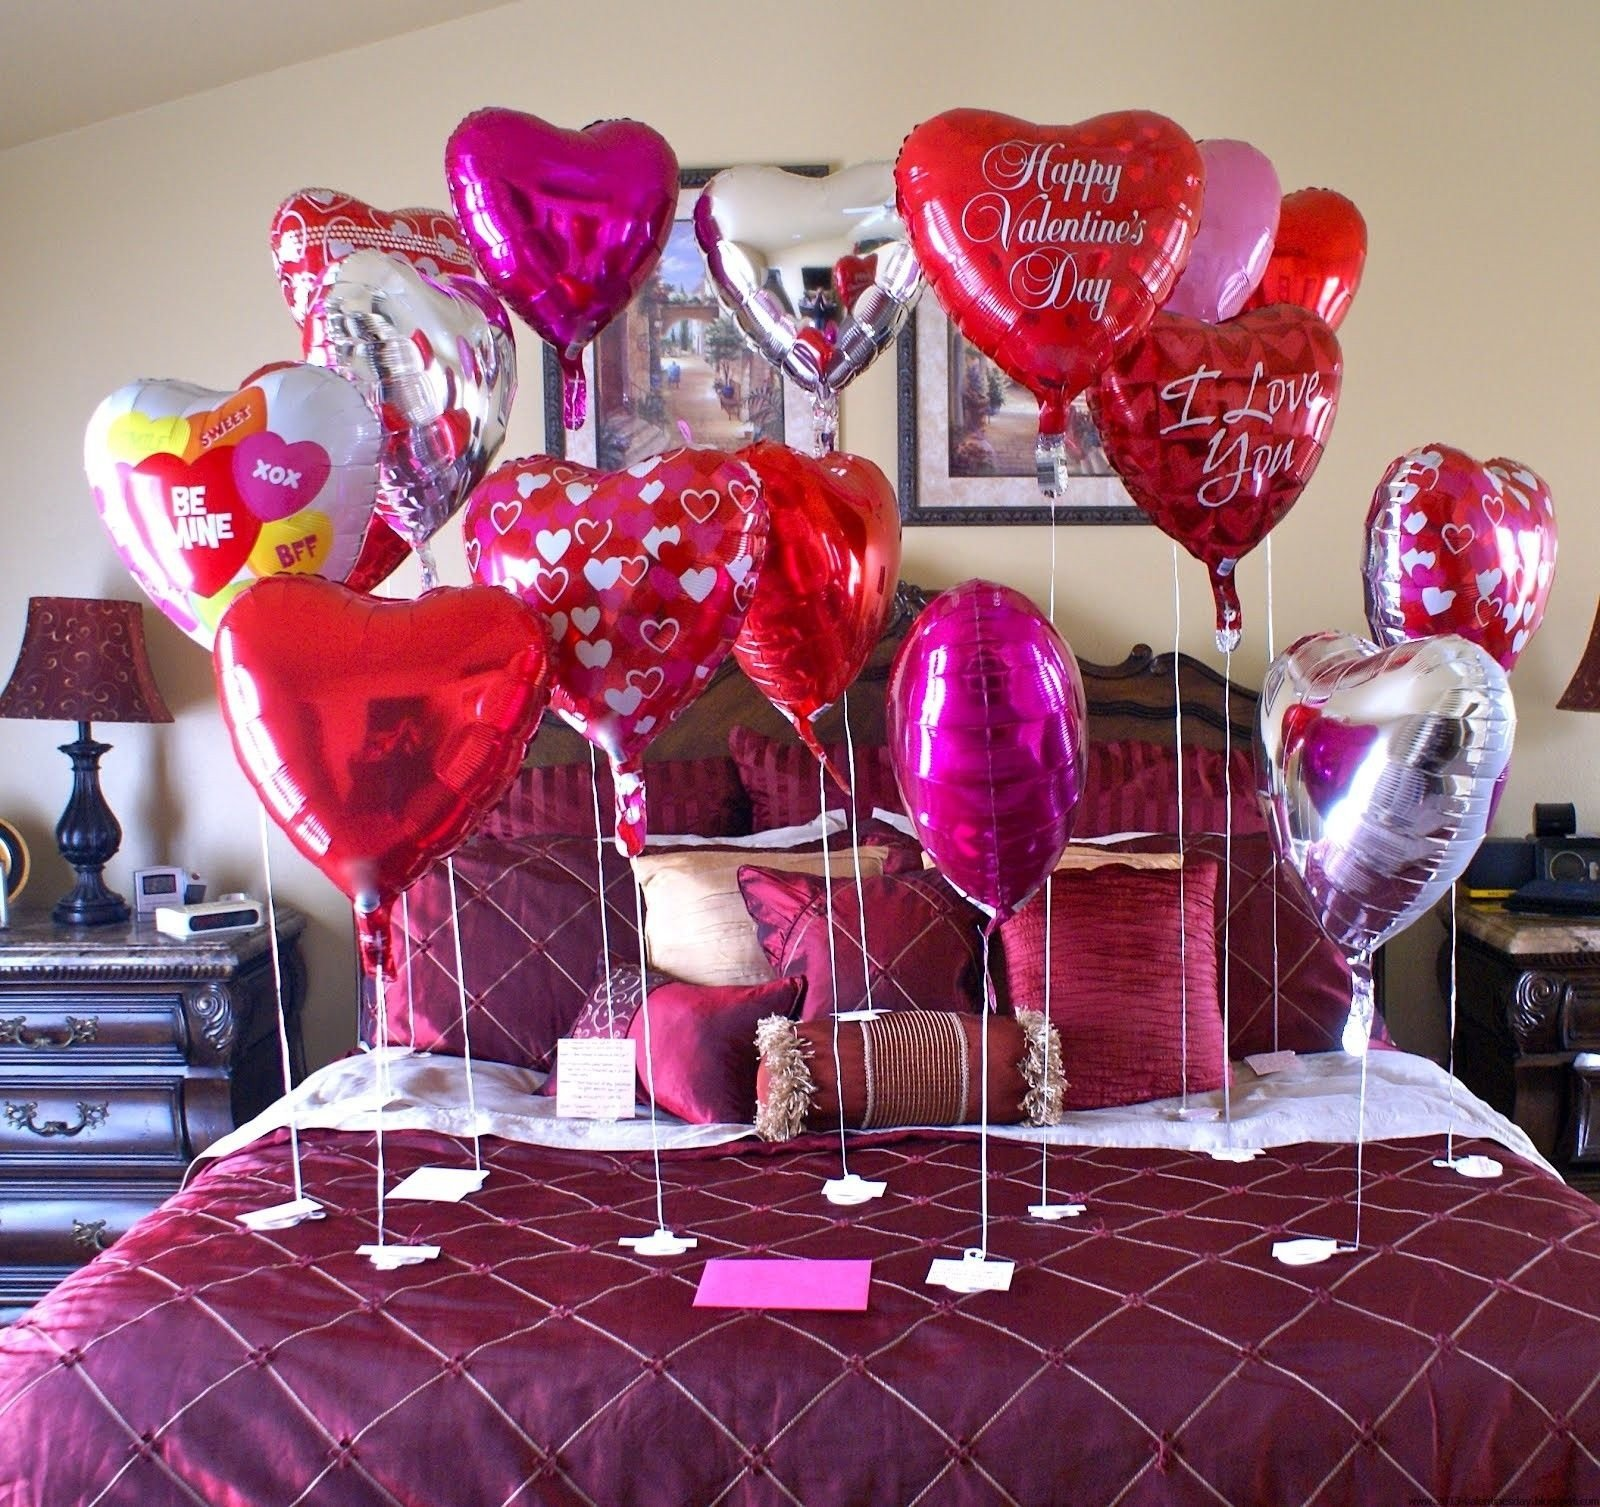 10 Nice Valentines Day Ideas For New Couples d180d0bed0bcd0b0d0bdd182d0b8d187d0b5d181d0bad0b8d0b9 d0b4d0b5d0bad0bed180 d0b4d0bed0bcd0b0 d0bdd0b0 d0b4d0b5d0bdd18c d181d0b2d18fd182 2021